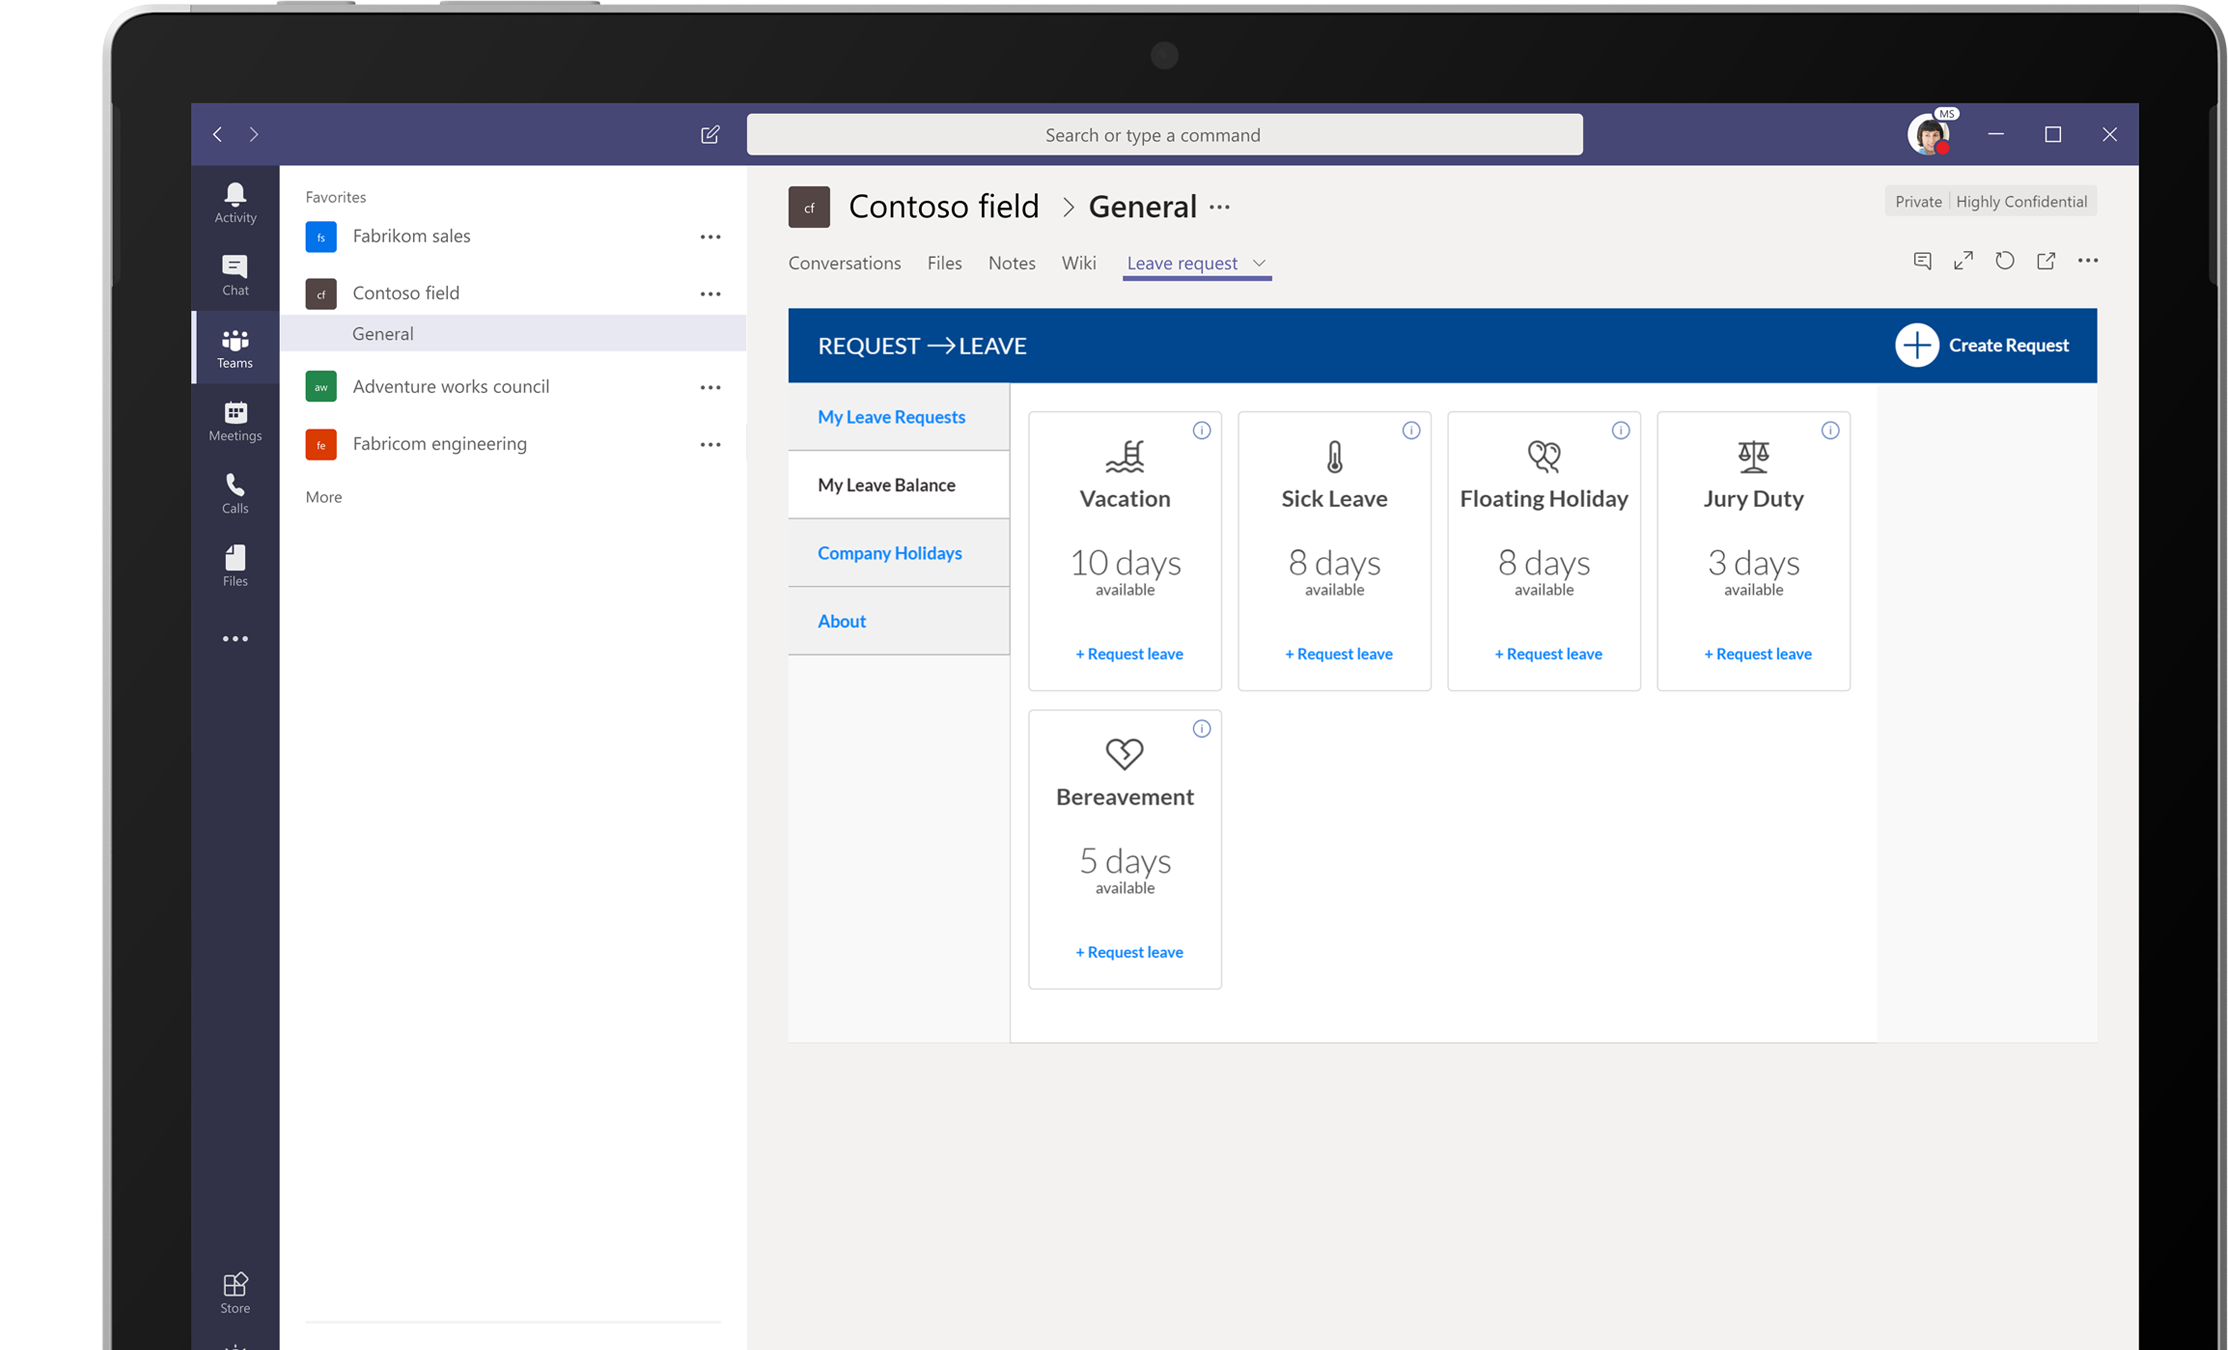 A device screen showing Microsoft Teams